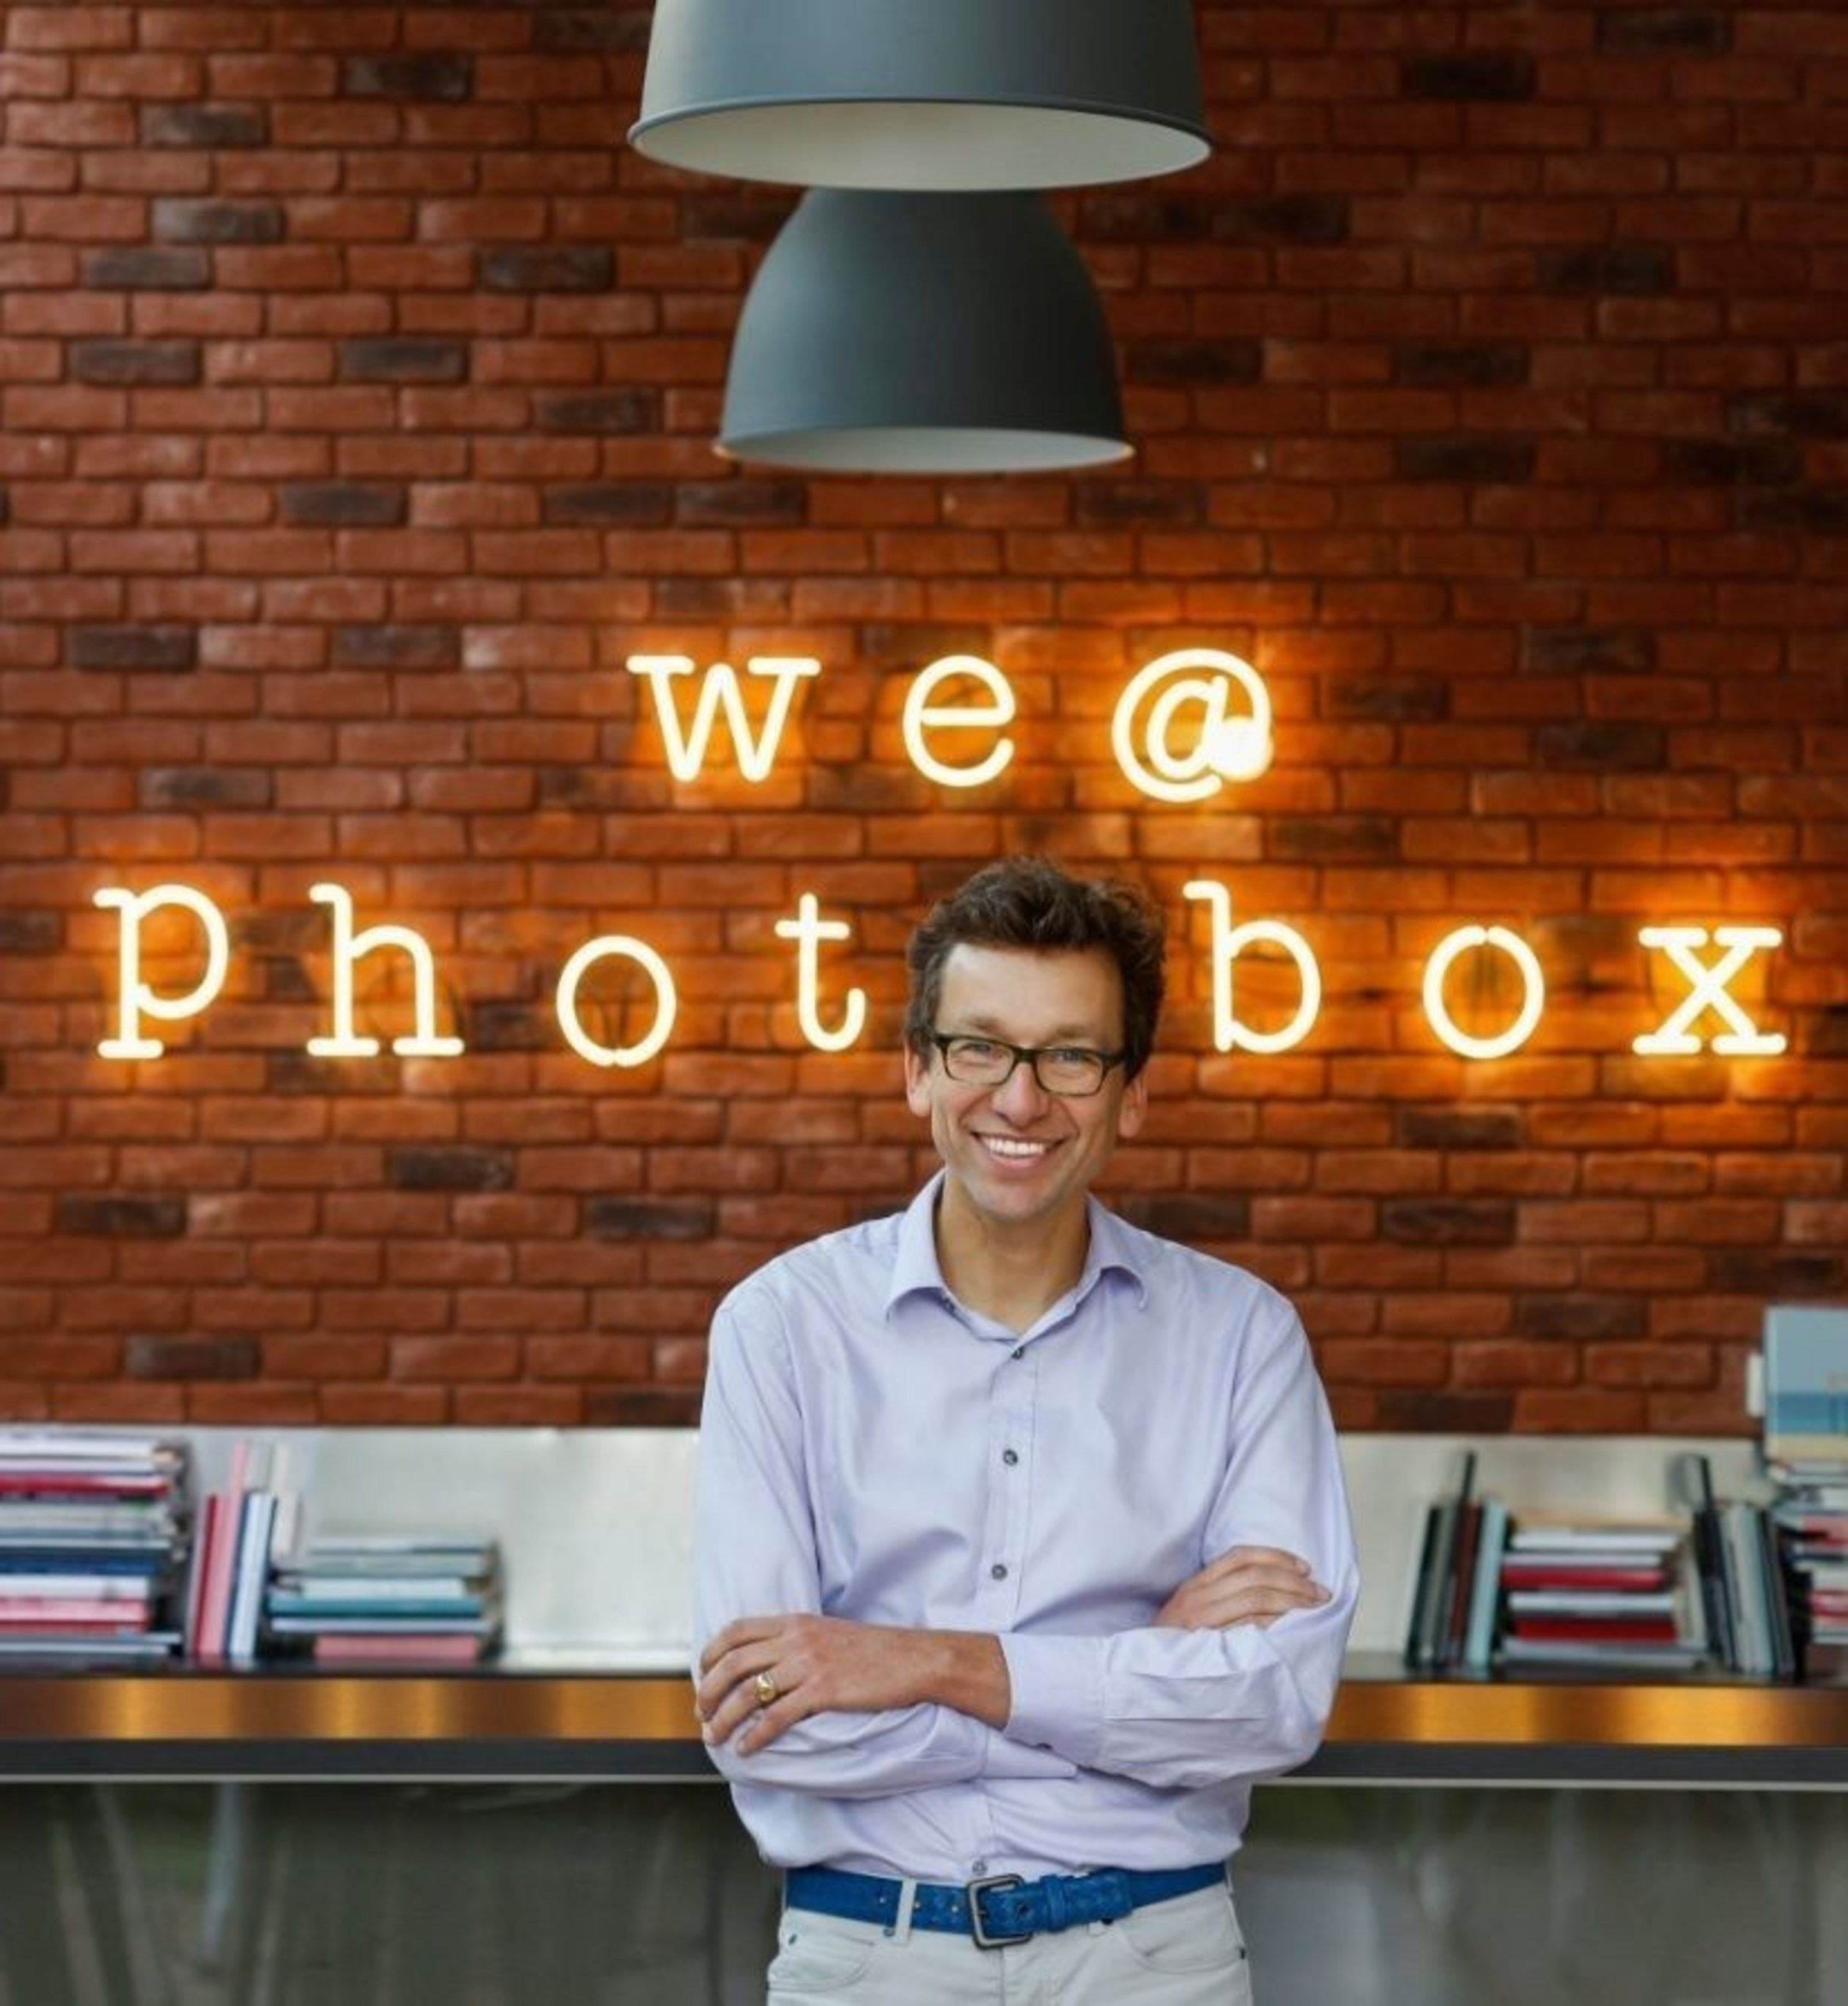 Stan Laurent, Group President and CEO of Photobox Group (PRNewsFoto/PhotoBox Group) (PRNewsFoto/PhotoBox Group)